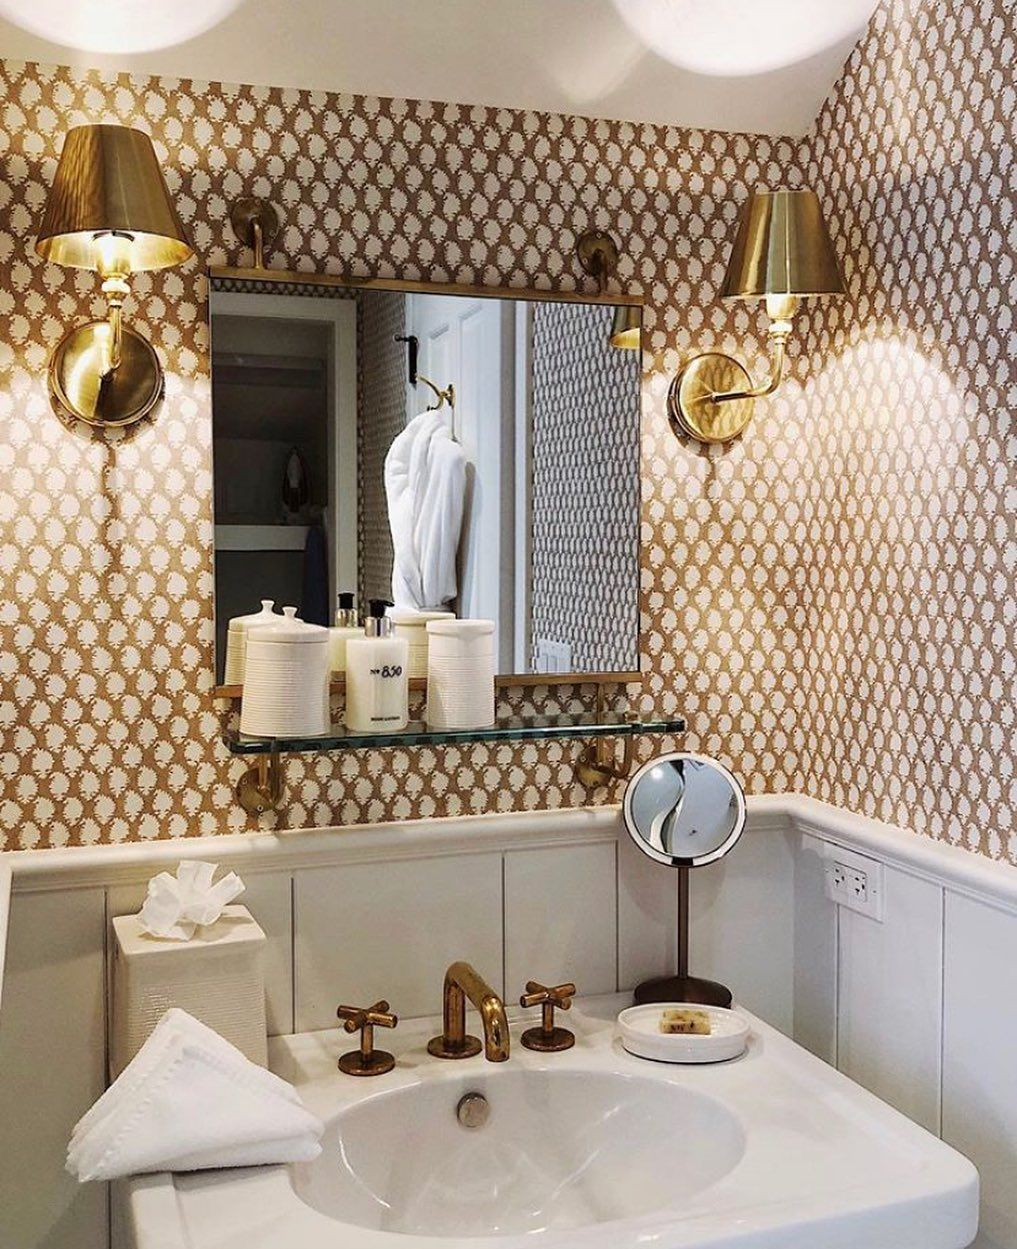 Erin Gates On Instagram Small Powder Room Inspiration Via 850hotel Designed By Ritakonig In 2020 With Images Rustic Bathrooms Powder Room Small Bathrooms Remodel